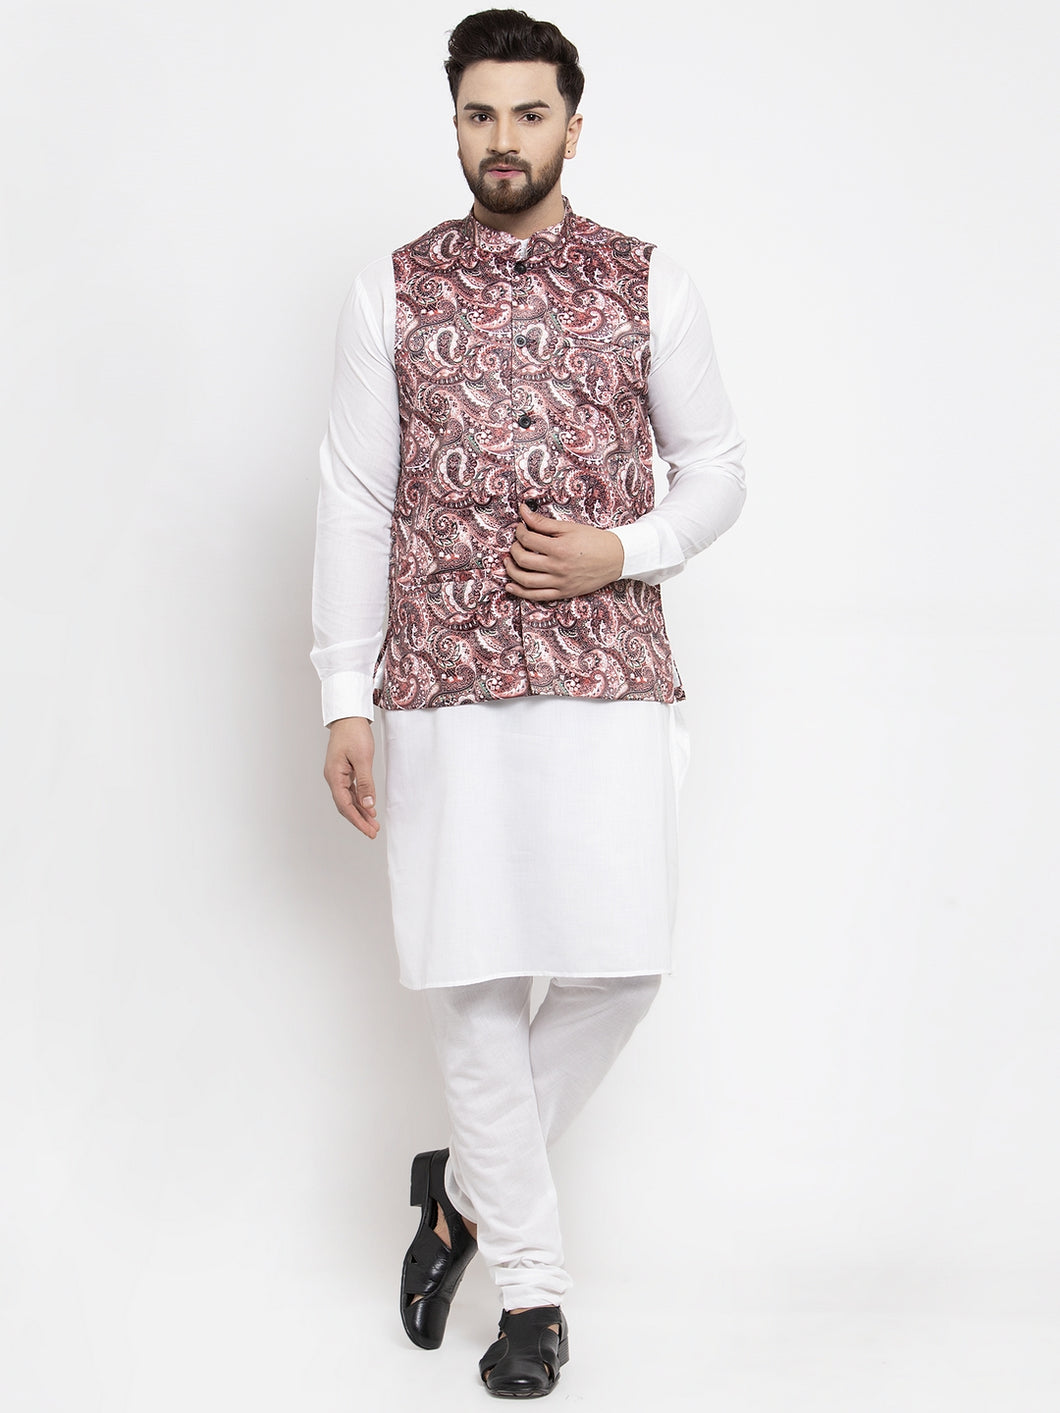 Jompers Men White Solid Kurta with Churidar & Pink Printed Nehru Jacket